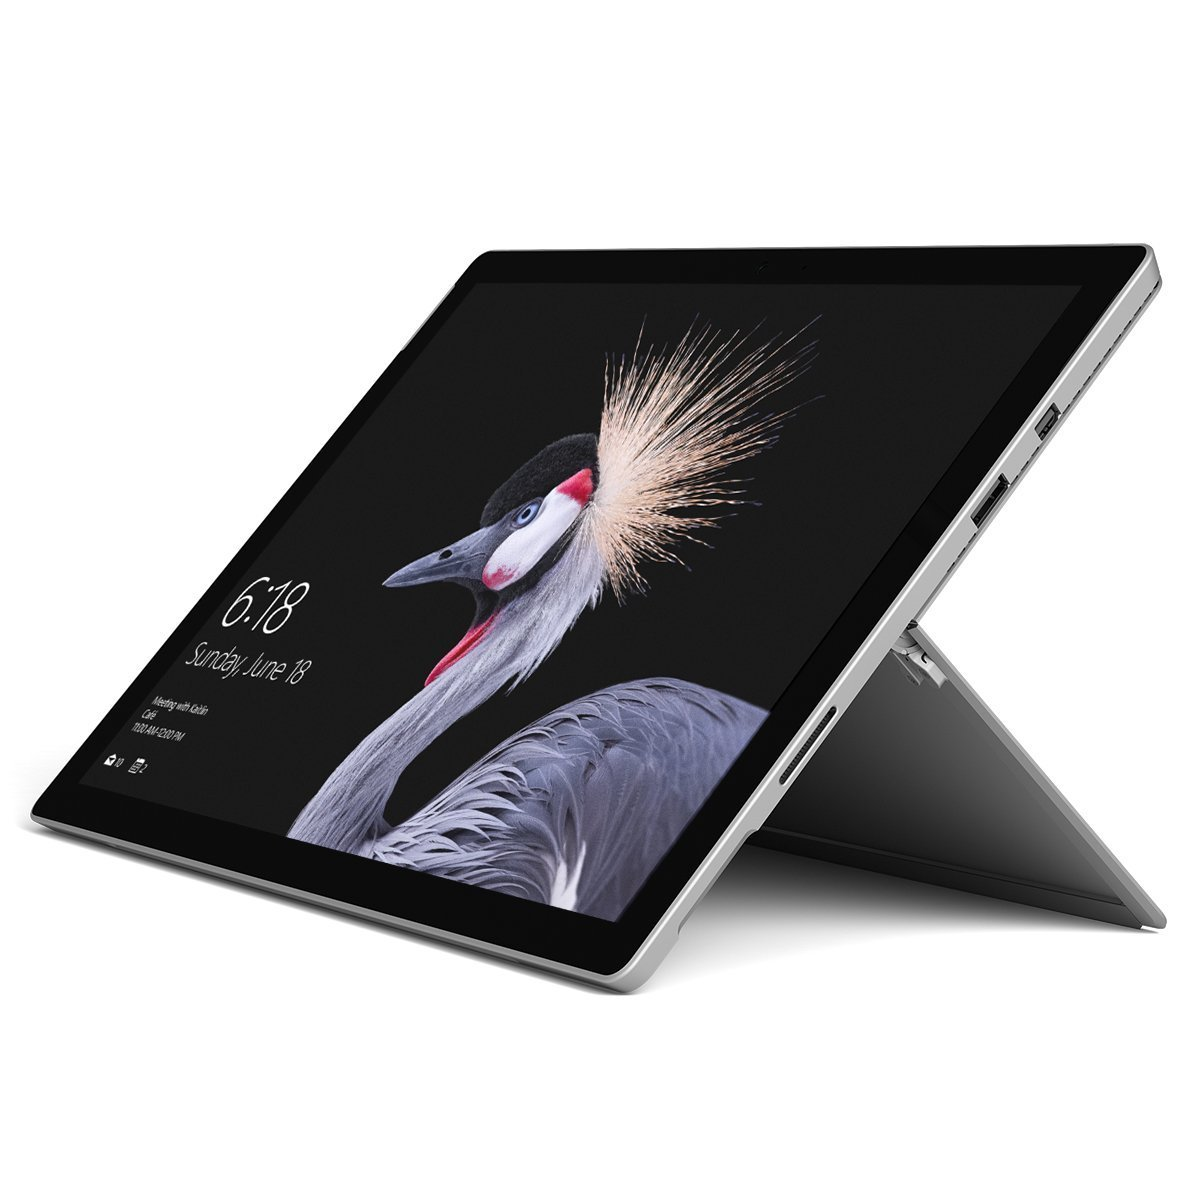 Image of Microsoft Surface Pro (2017) i5 256GB 8GB Ram FJY-00001 [without Keyboard]